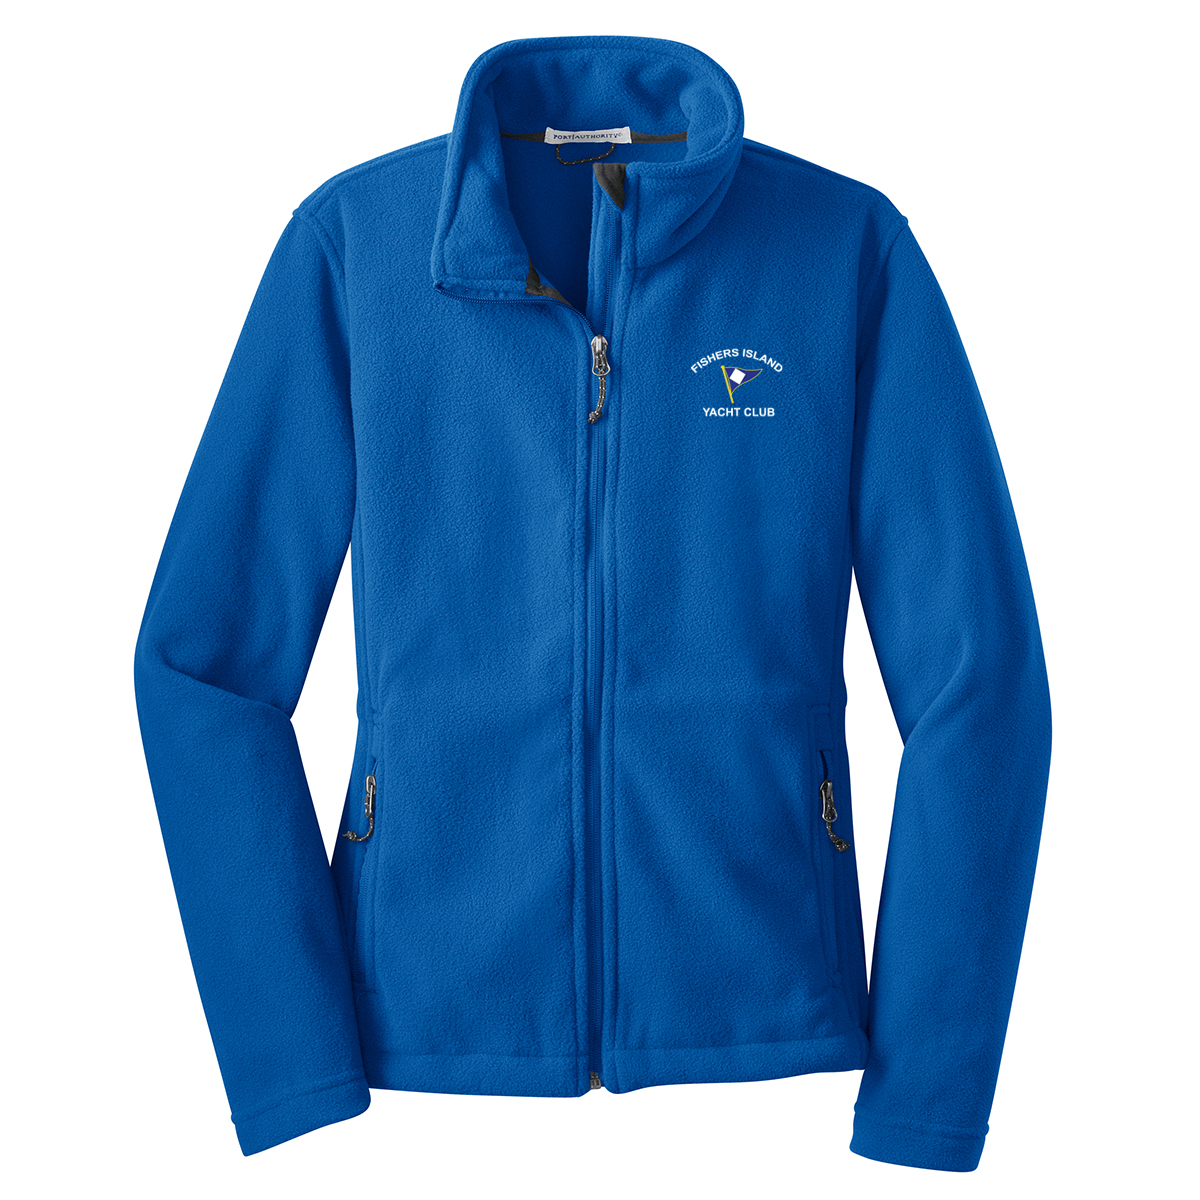 Fishers Island Yacht Club - Women's Full Zip Fleece Jacket